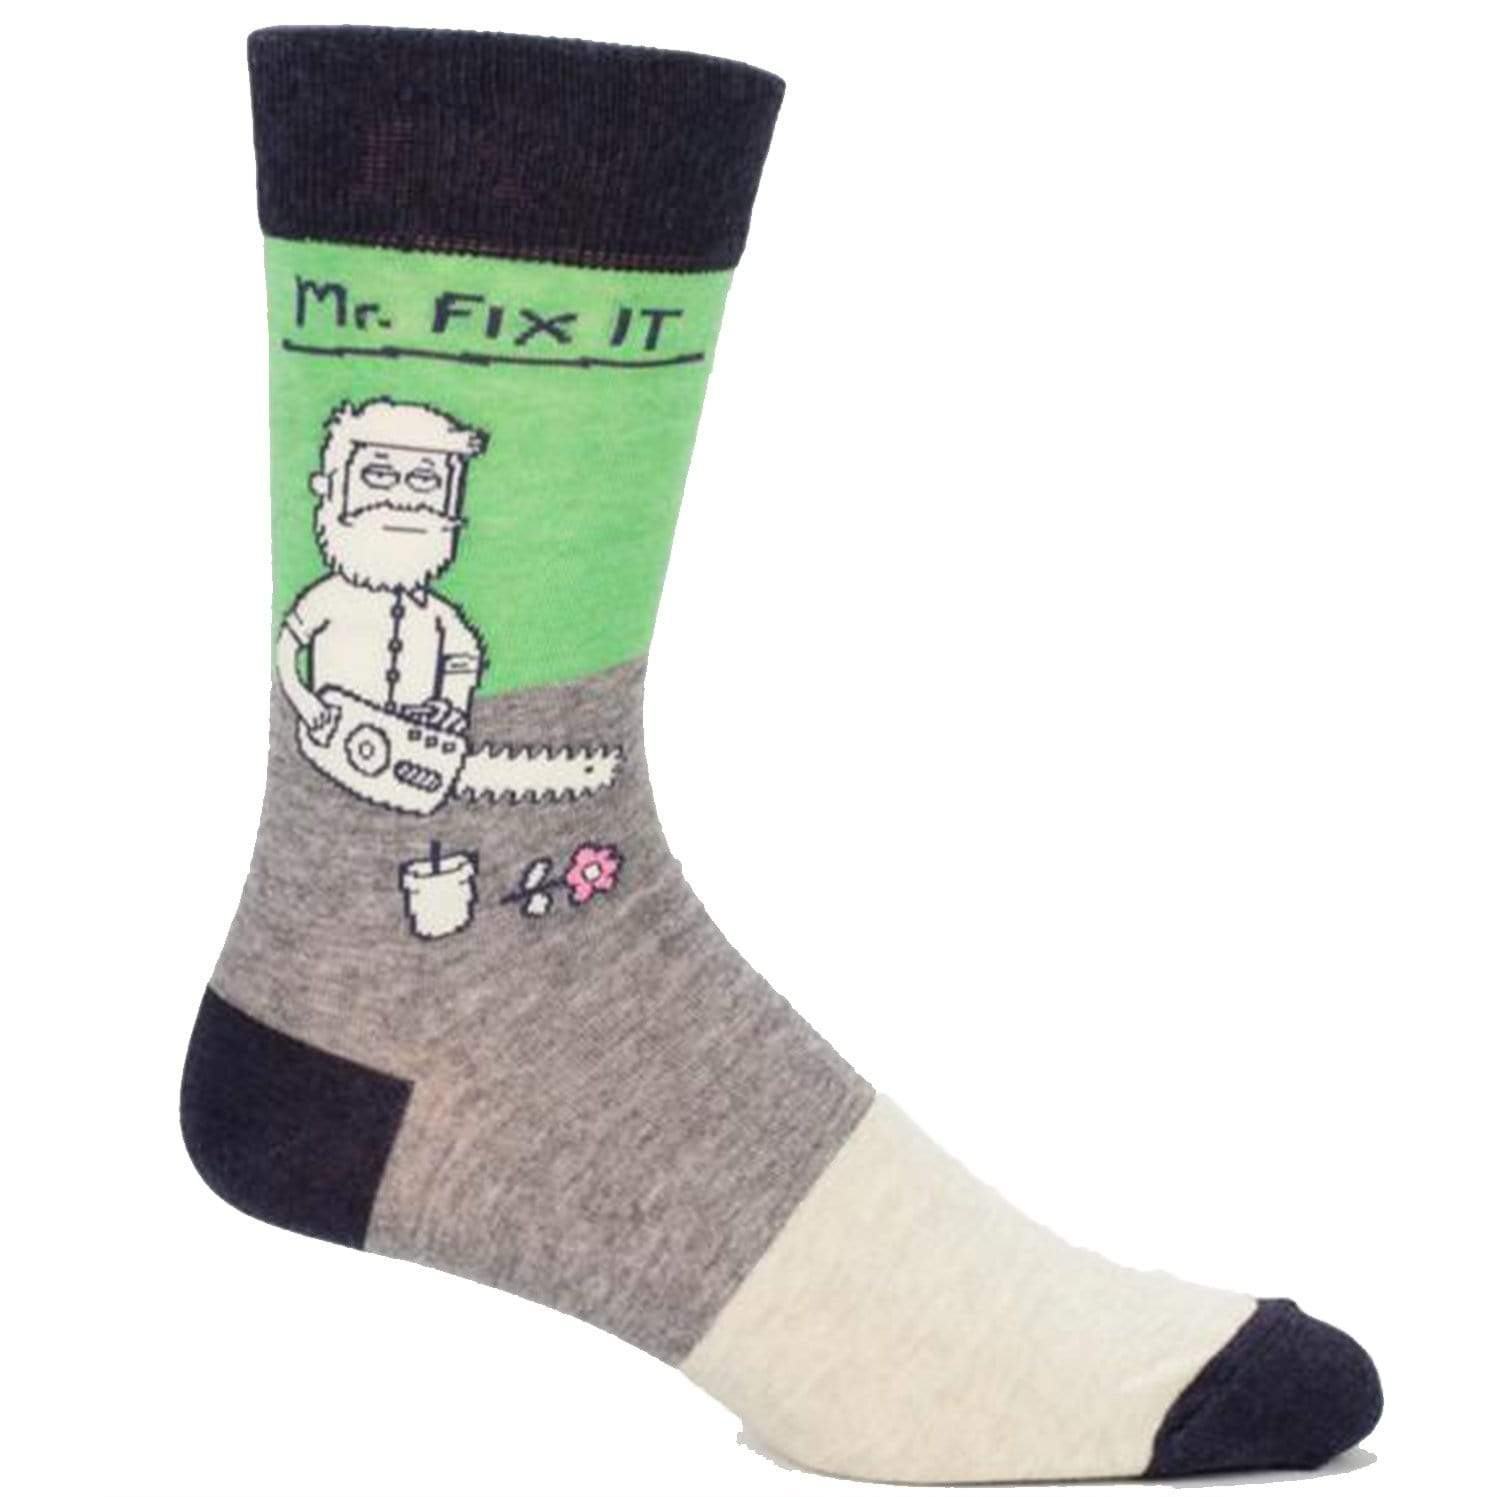 Mr. Fix It Socks - Crew Socks for Men